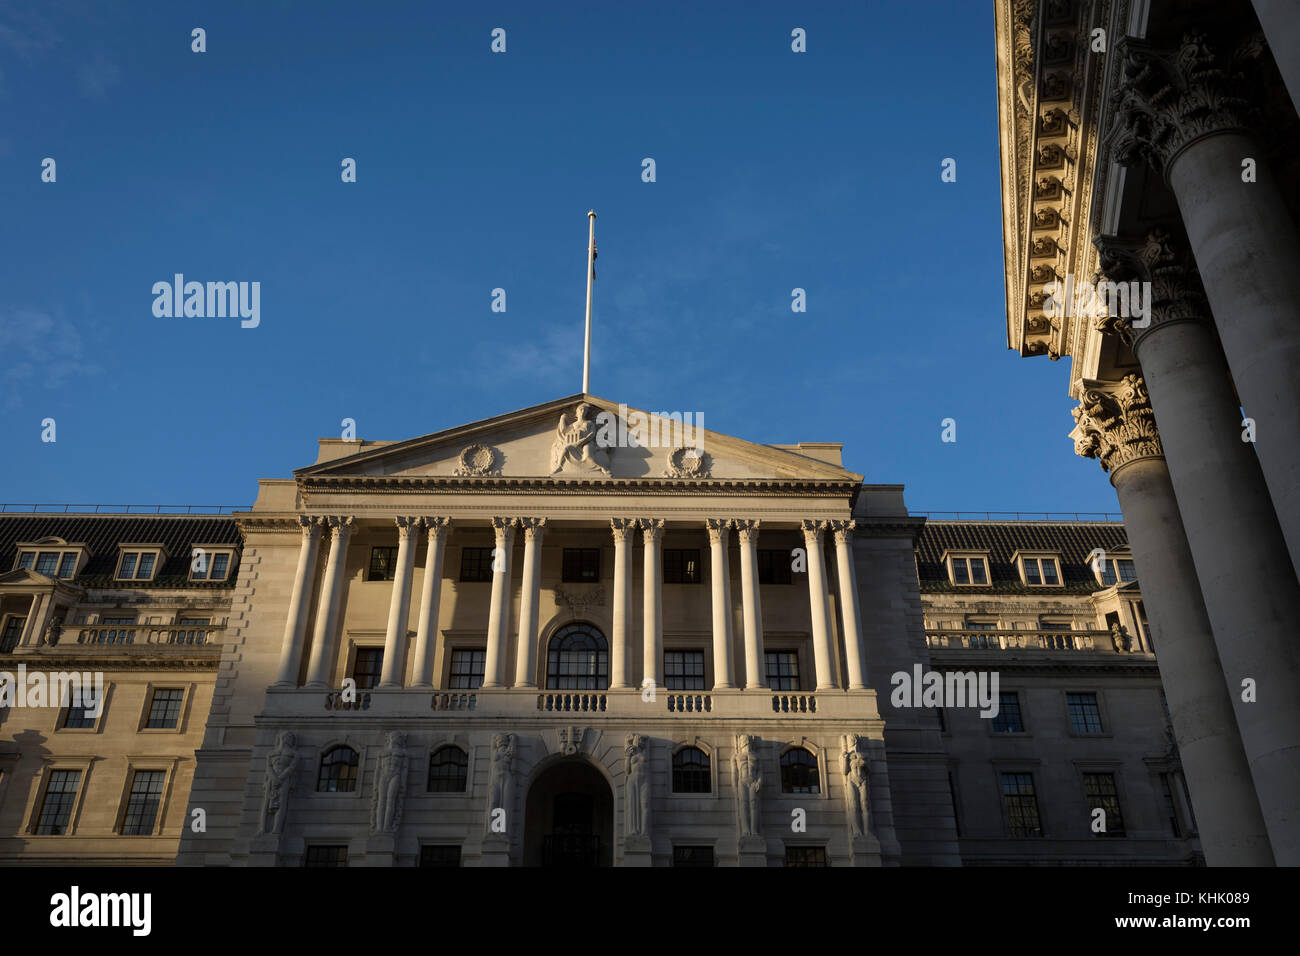 Exterior of the Bank of England and the Corinthian columns of Royal Exchange on Threadneedle Street in the Square - Stock Image